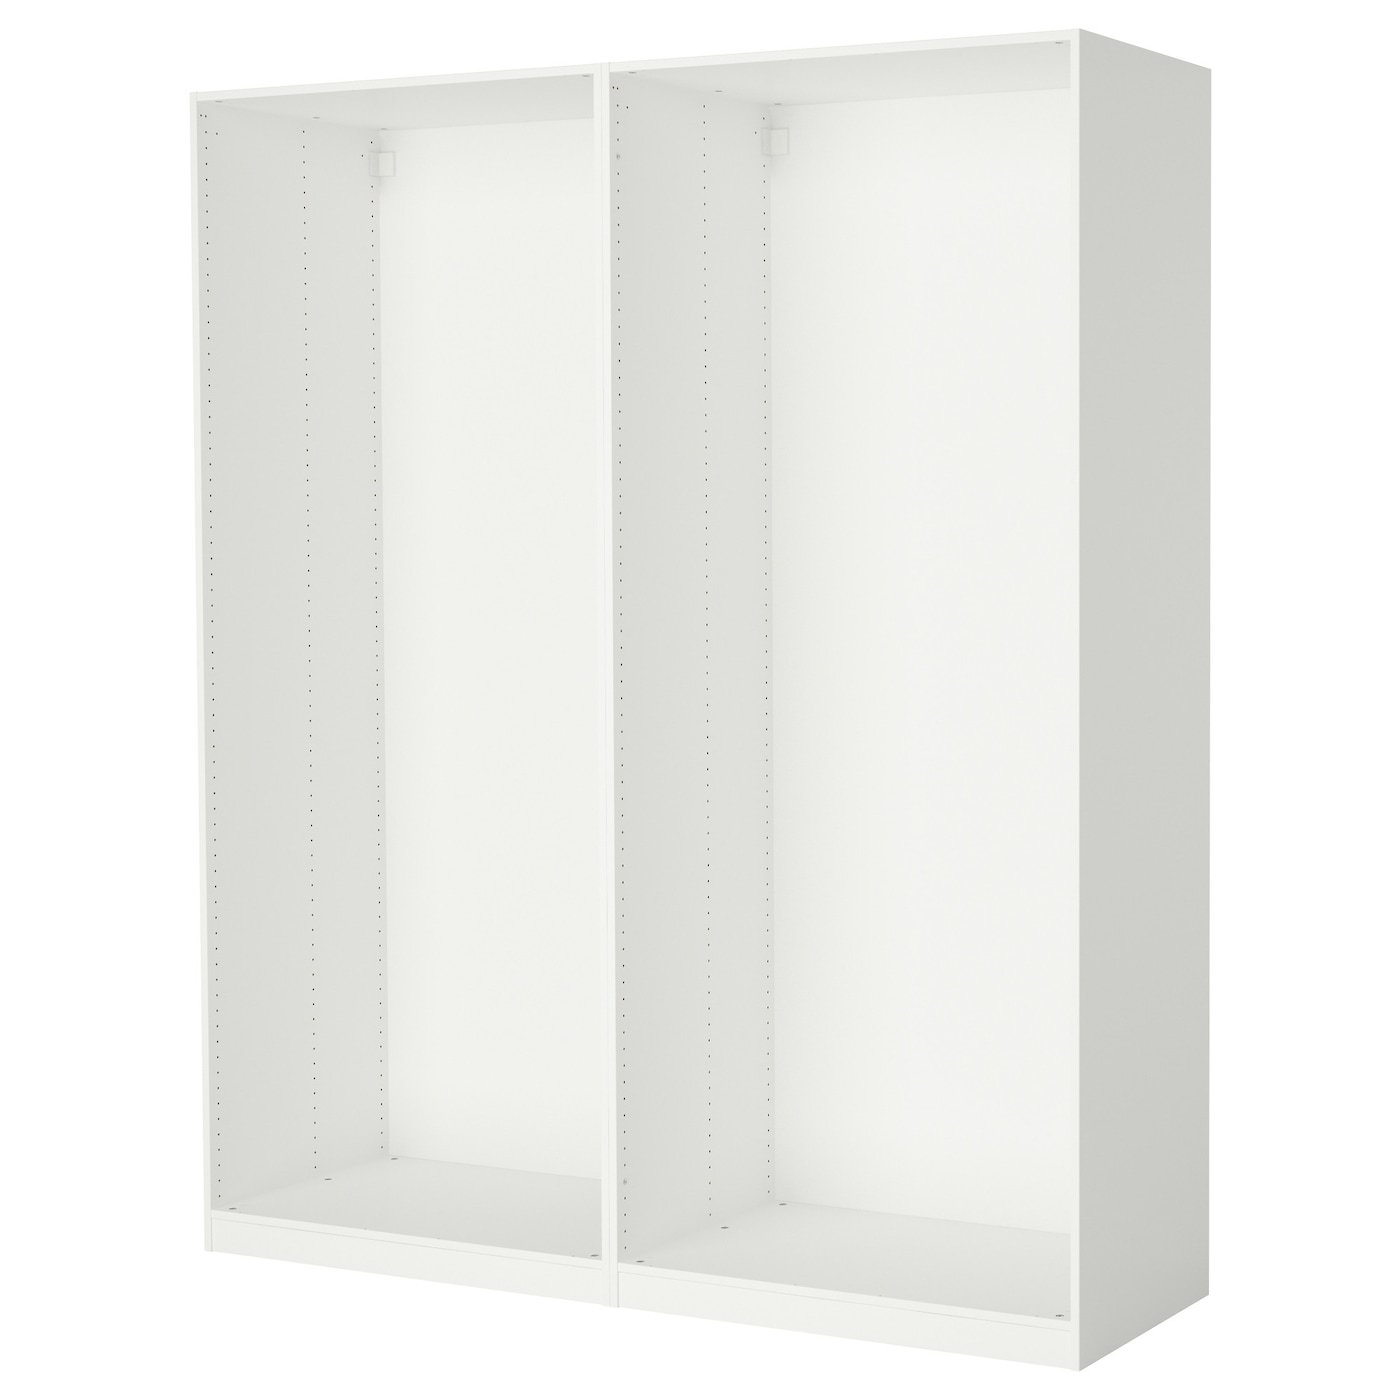 pax 2 wardrobe frames white 200 x 58 x 236 cm ikea. Black Bedroom Furniture Sets. Home Design Ideas